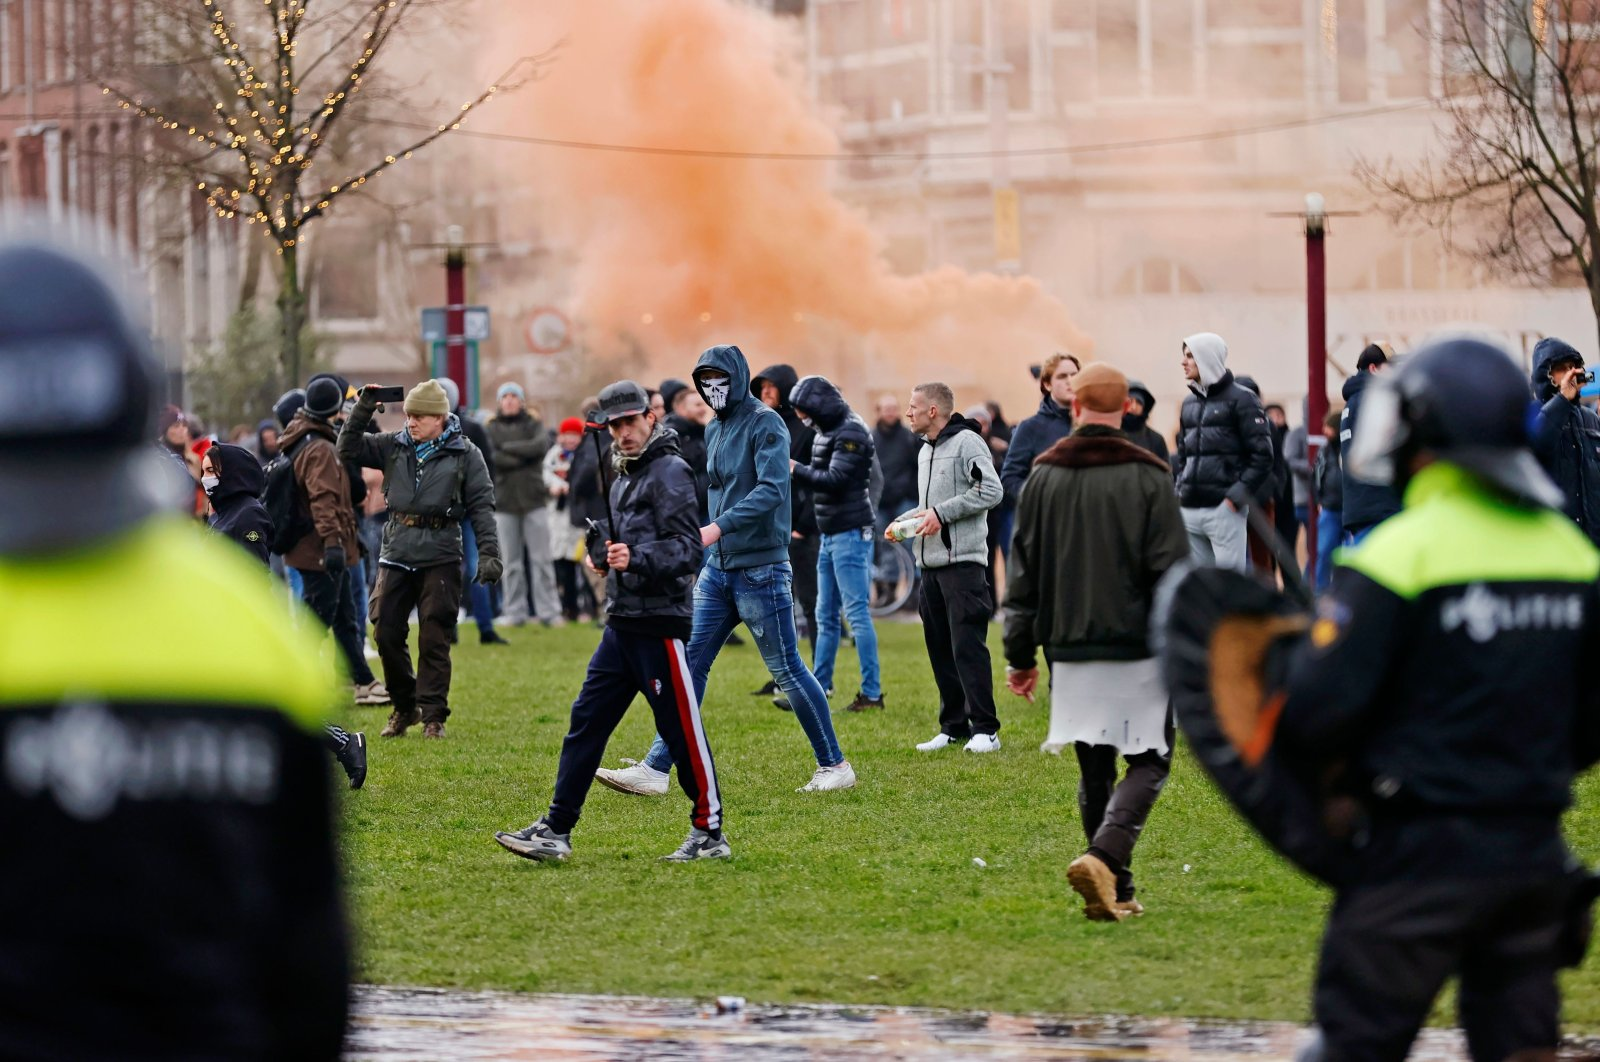 Riot police clash with protesters during a demonstration in the Museumplein town square in Amsterdam, Netherlands on Jan. 17, 2021. (AFP Photo)